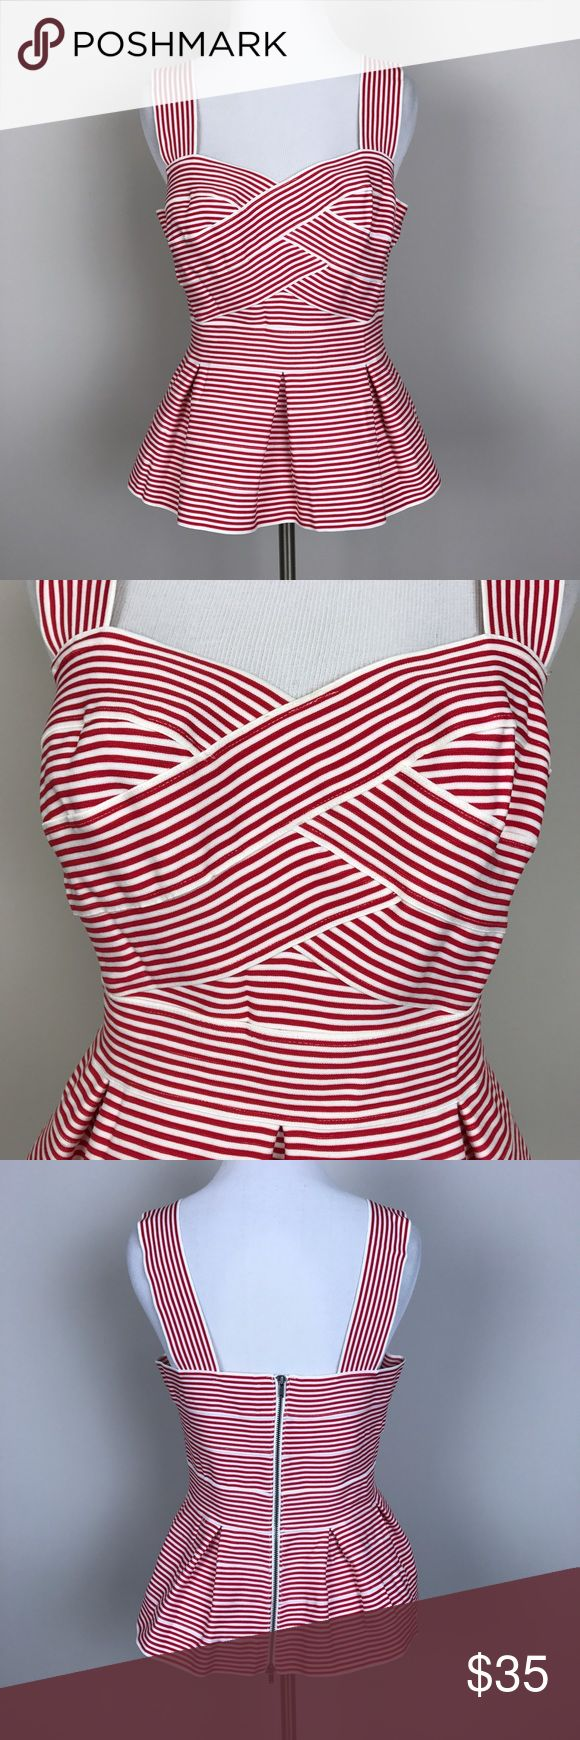 """[Anthropologie] Cabana Striped Peplum Tank Retro Cabana Peplum Tank by HD in Paris from Anthropologie. Thick stretchy knit. Wide straps. Sweetheart neckline. Exposed back zip closure. Red and white stripes. Retro Pinup inspired.   🔹Pit to Pit: 17"""" 🔹Waist: 14"""" Flat Across  🔹Length: 22"""" 🔹Condition: Excellent pre-owned condition.   *J78 Anthropologie Tops Tank Tops"""